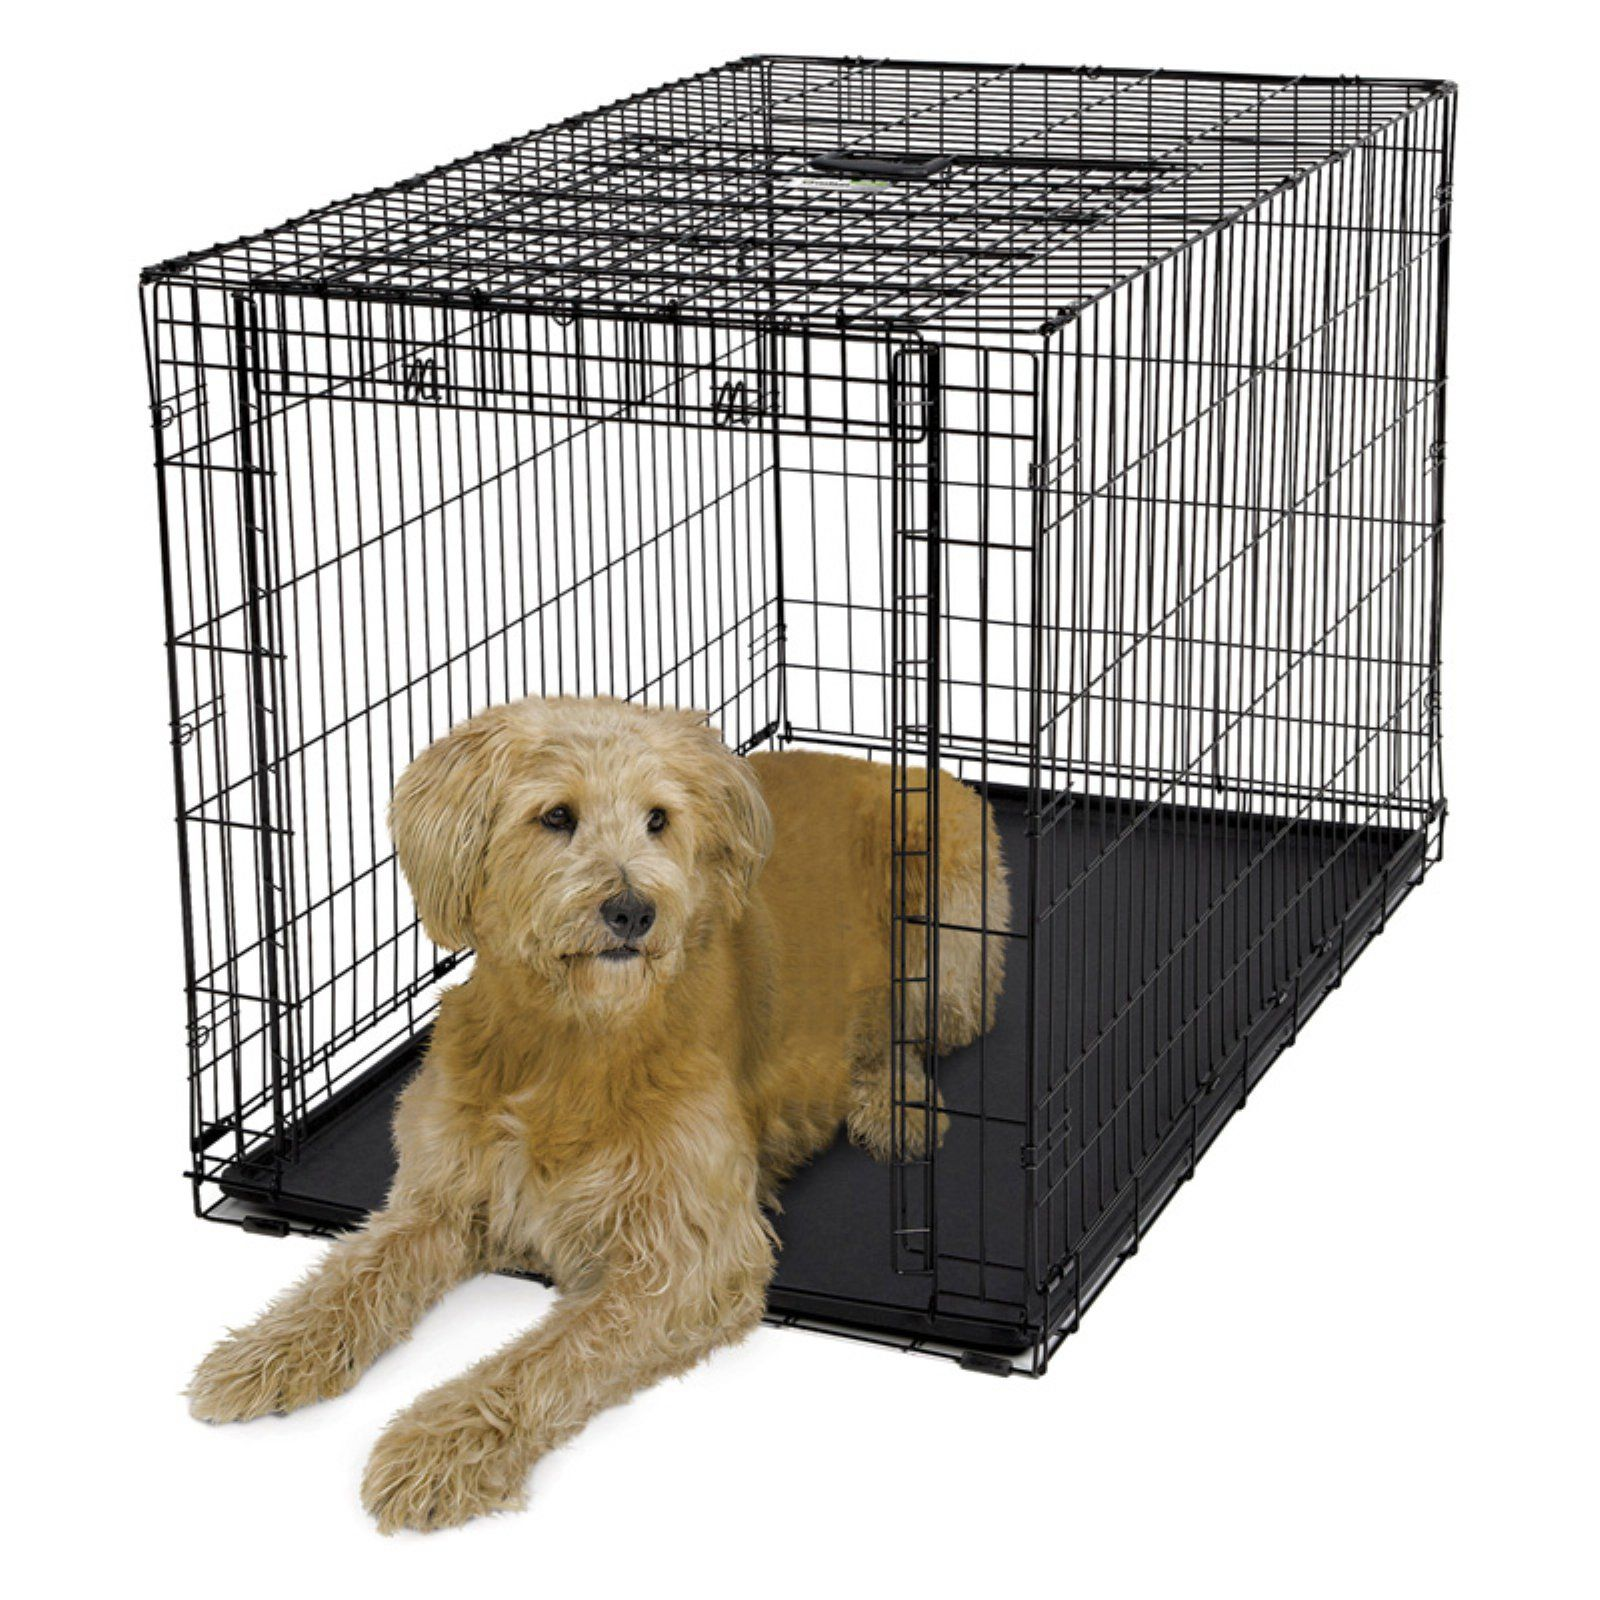 Midwest Homes For Pets Ovation Single Door Metal Dog Crate Dog Crate Large Dog Crate Folding Dog Crate